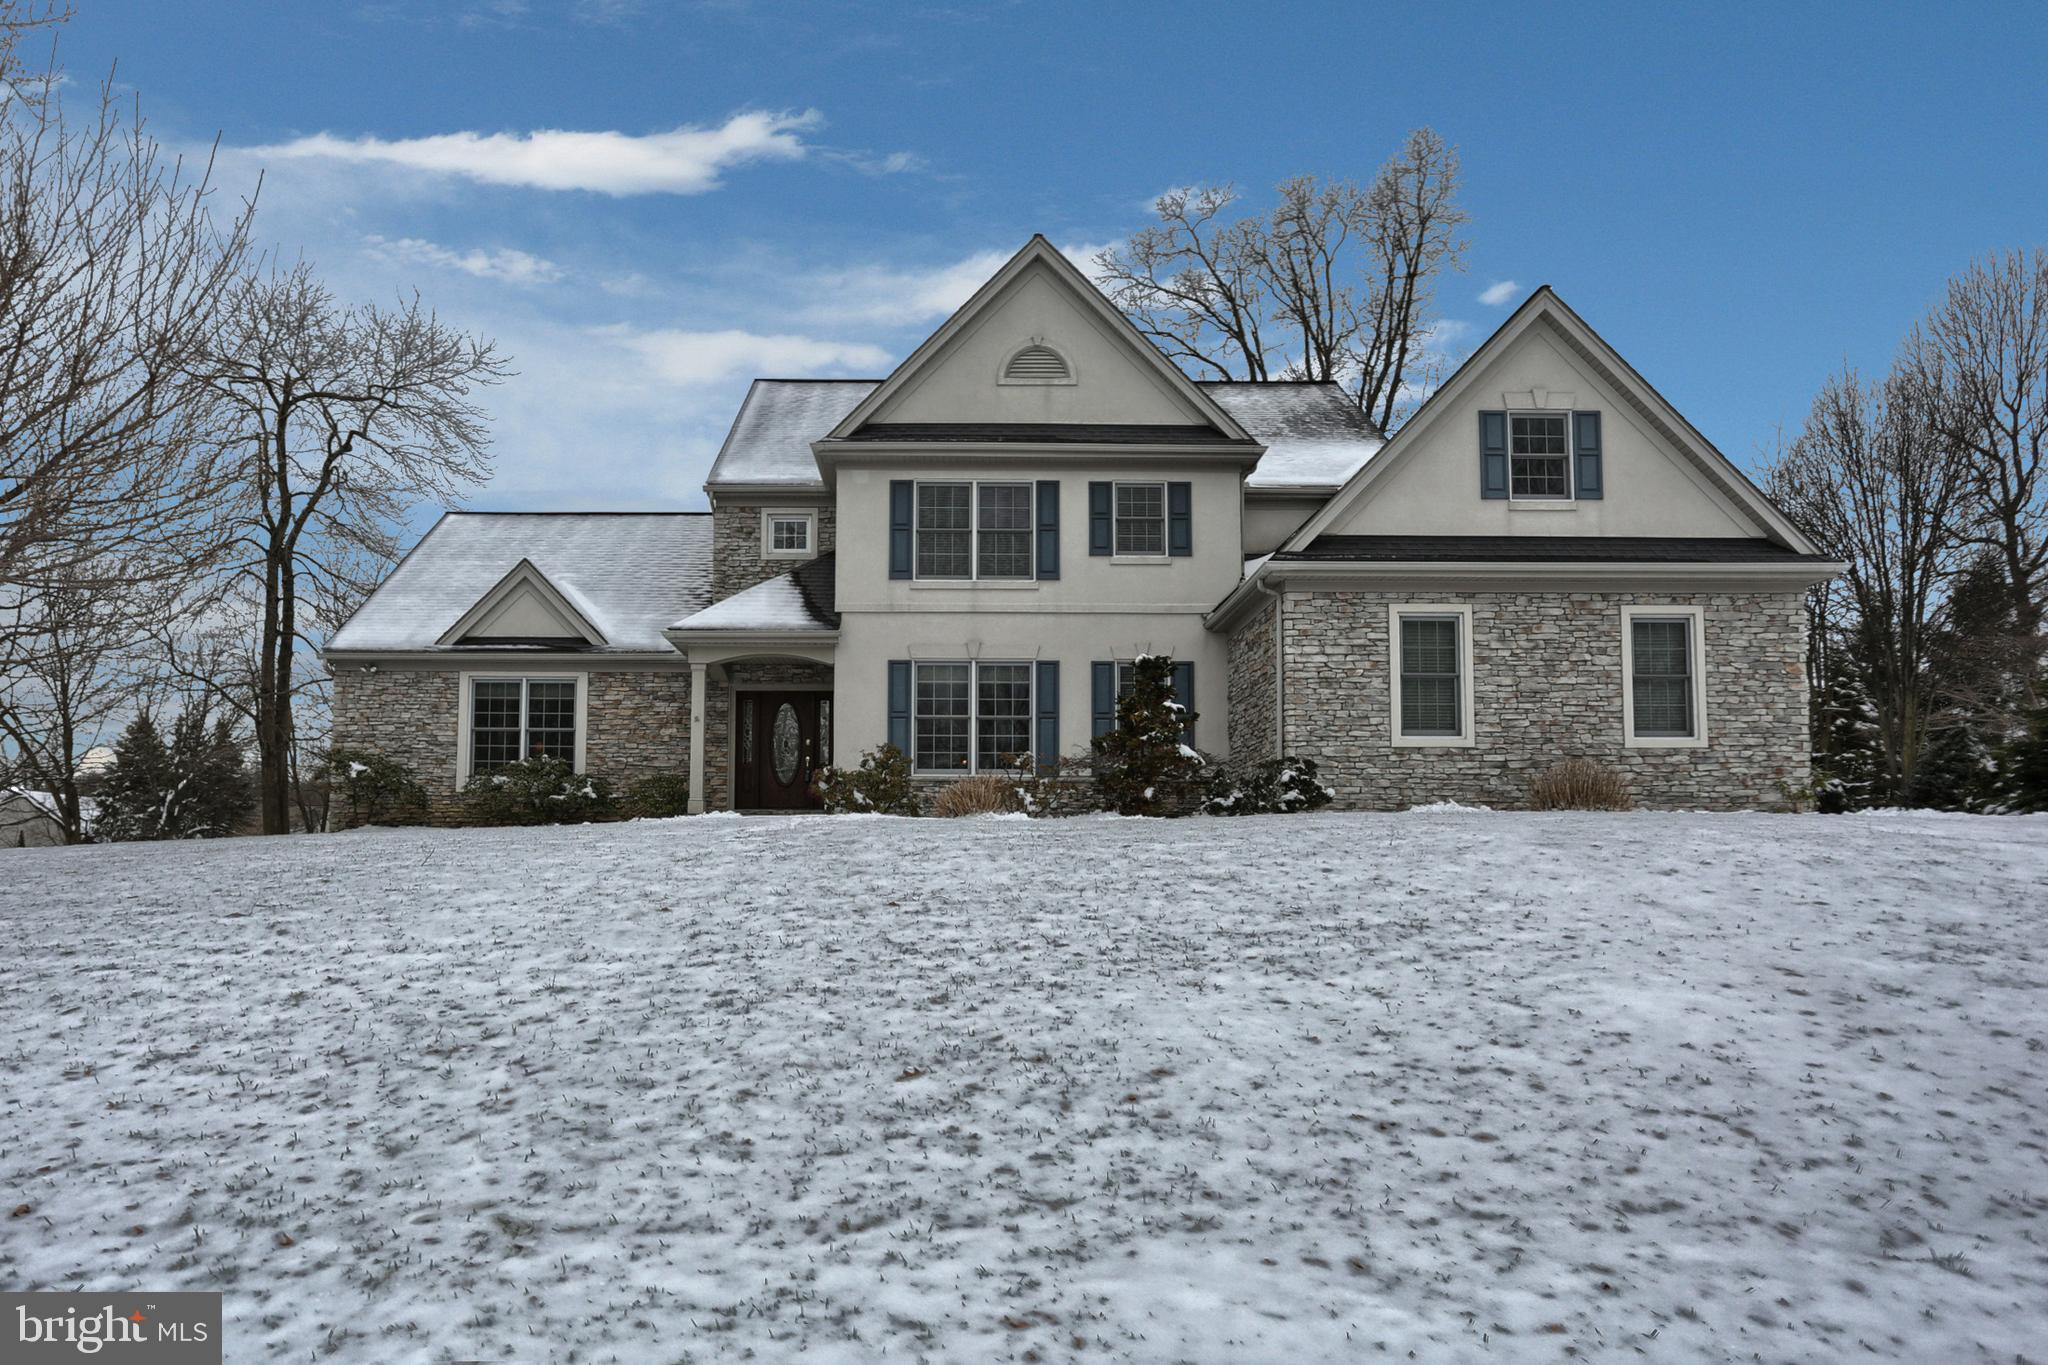 1035 PEGGY DRIVE, HUMMELSTOWN, PA 17036